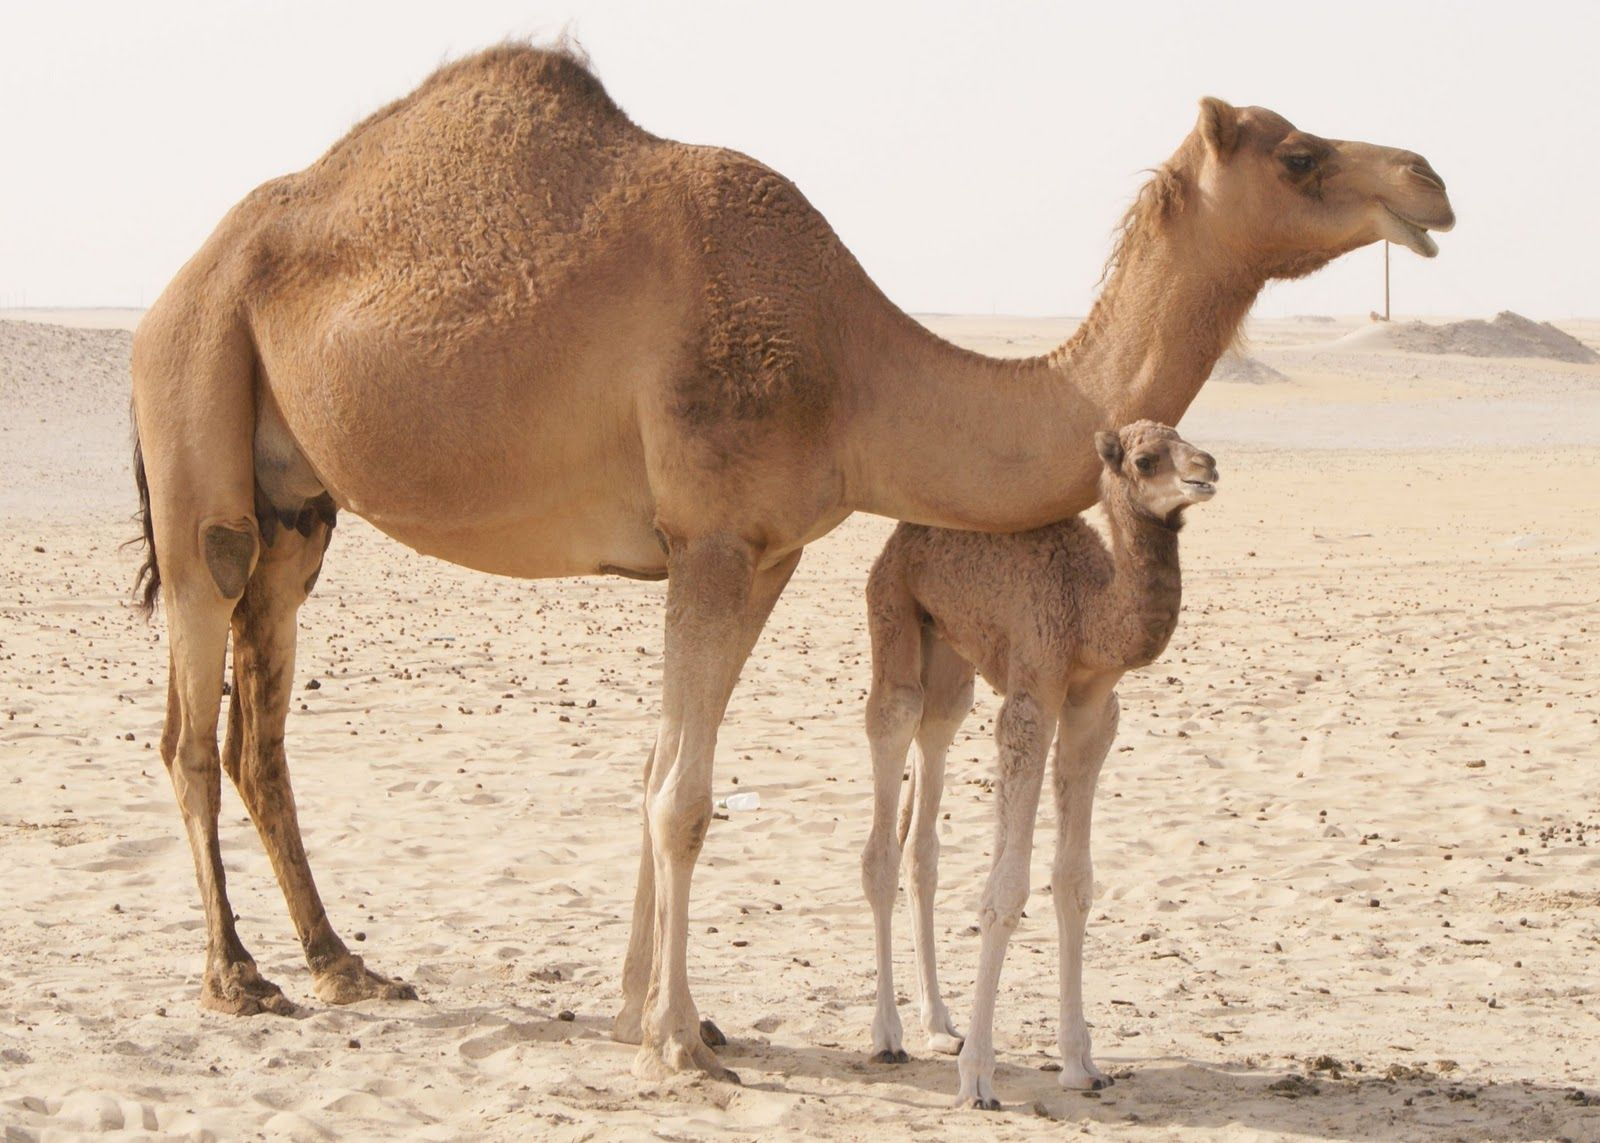 Camel clipart 3 camel. Camels hd wallpapers high